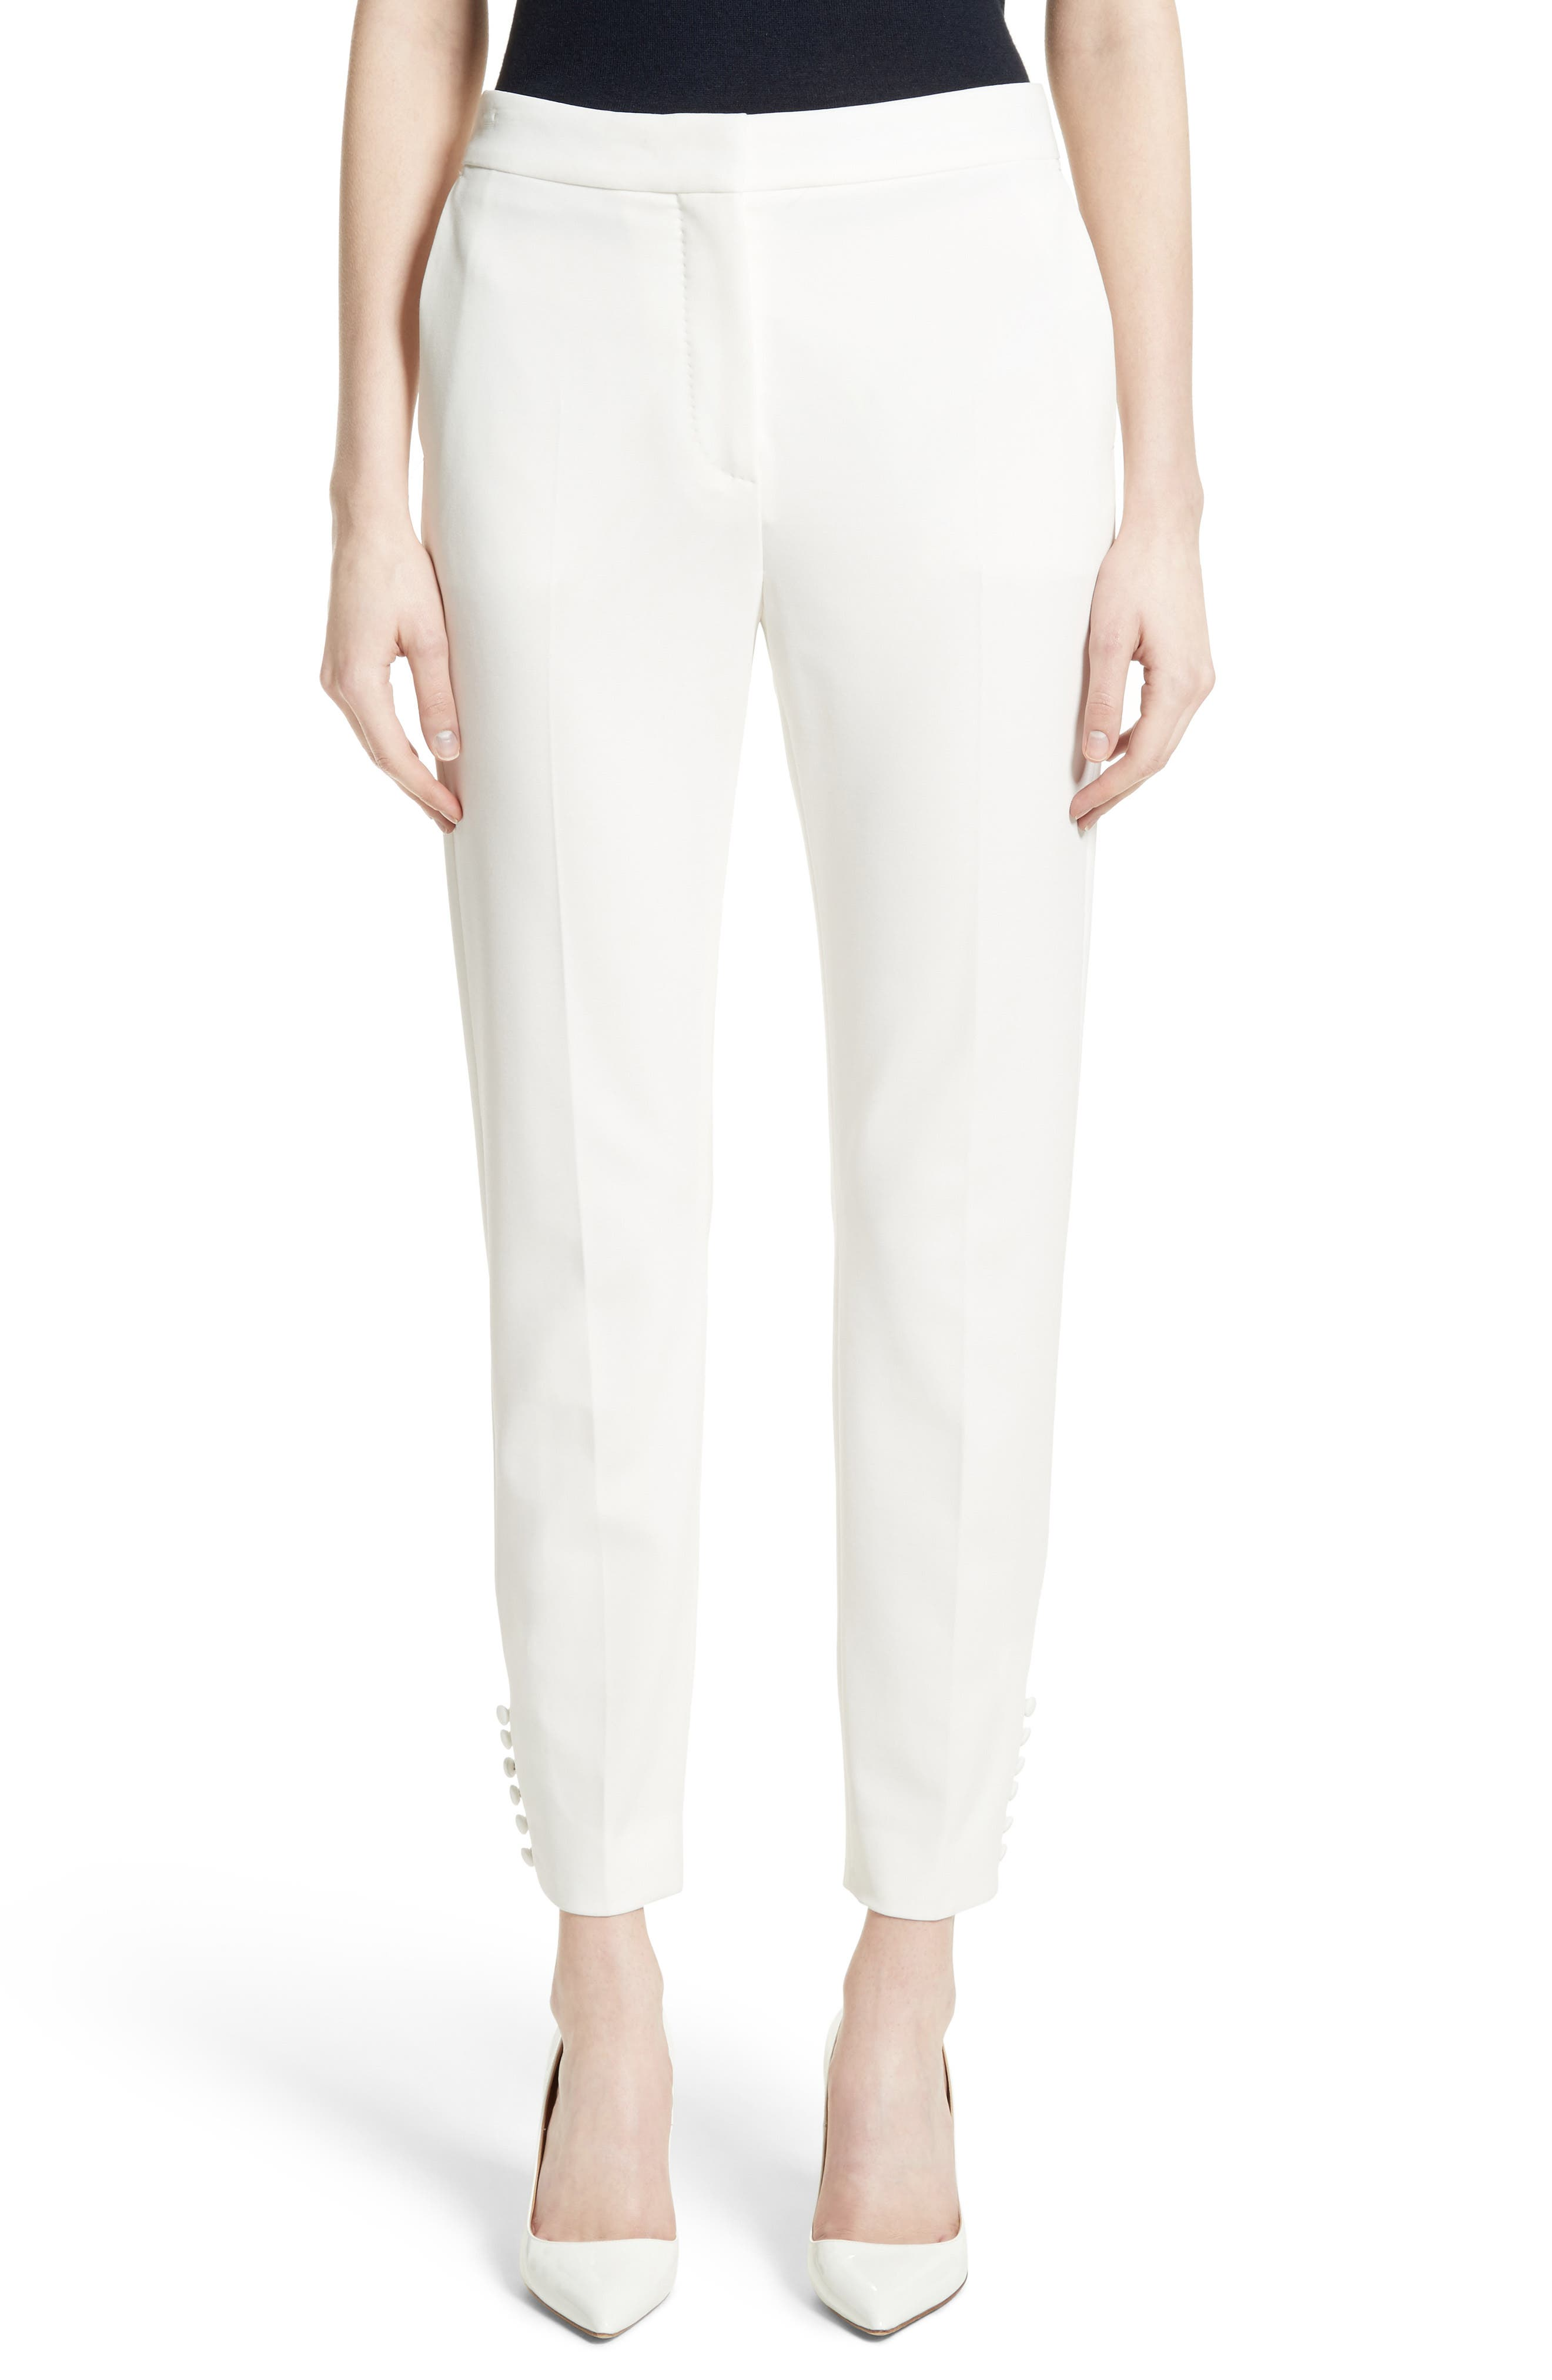 Papaile Crop Pants,                         Main,                         color, Ivory